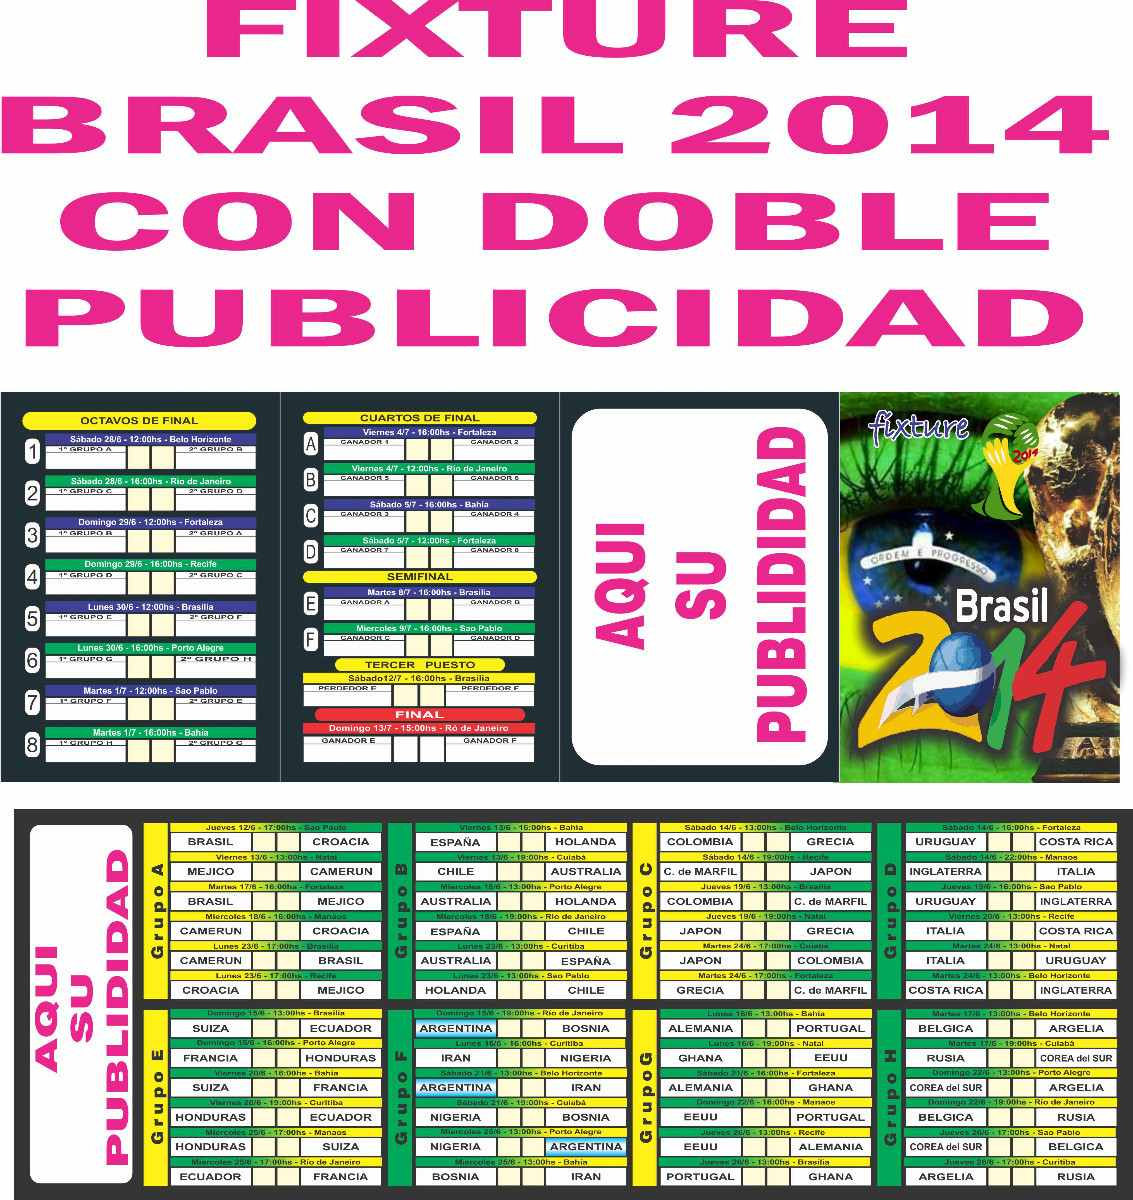 fixture-mundial-2014-full-color-publicidad-full-color-10149-MLA20024857020_122013-F